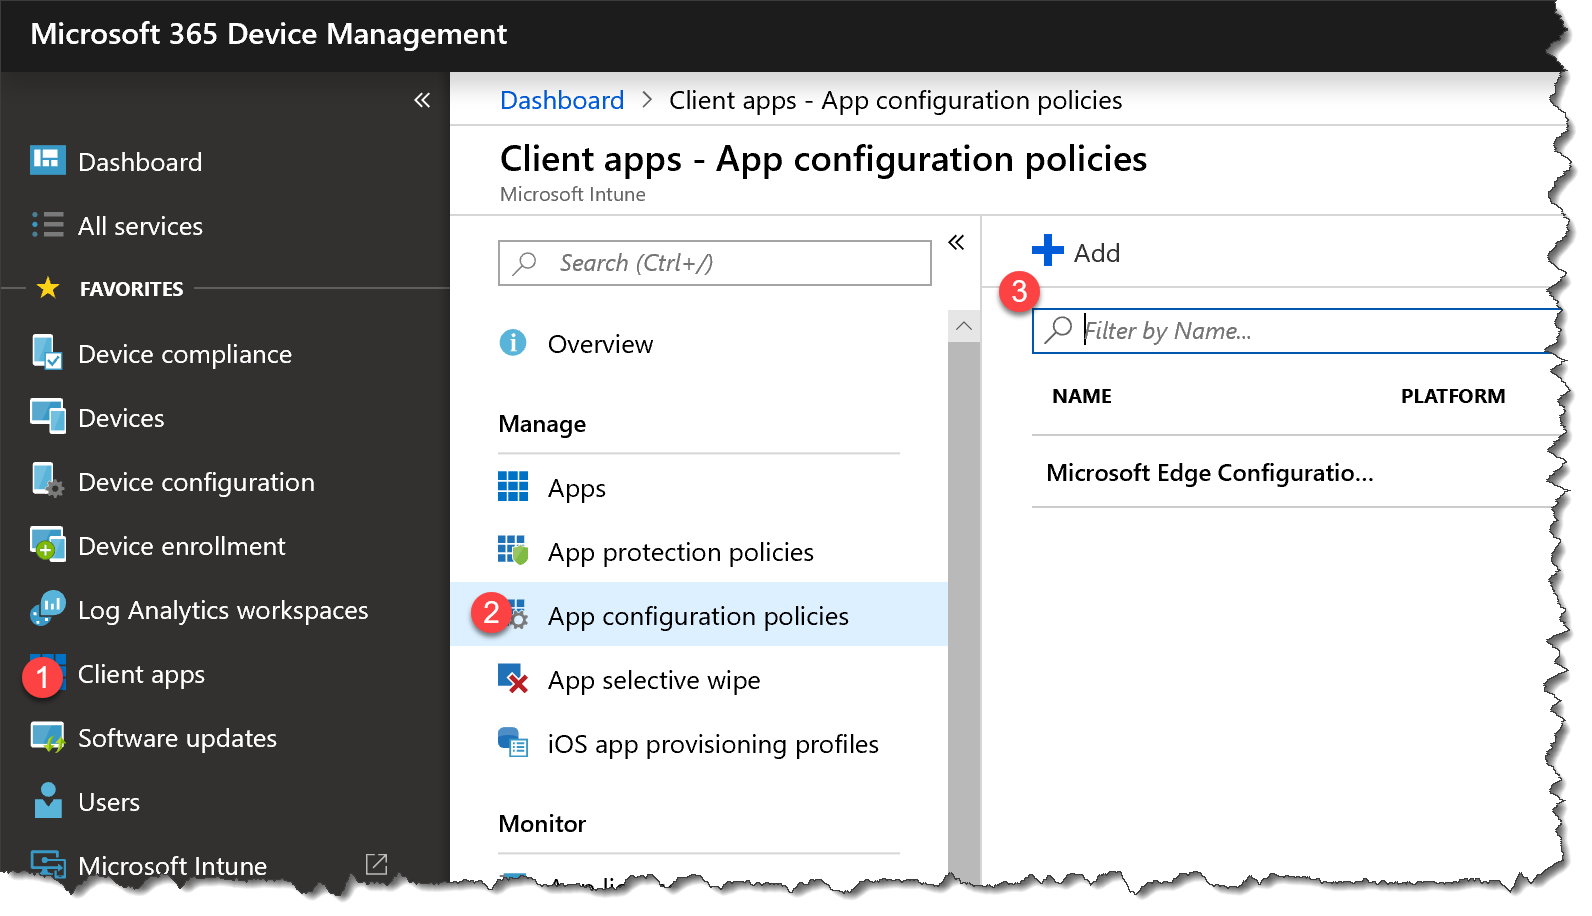 How to manage contact sync in Outlook on IOS and Android